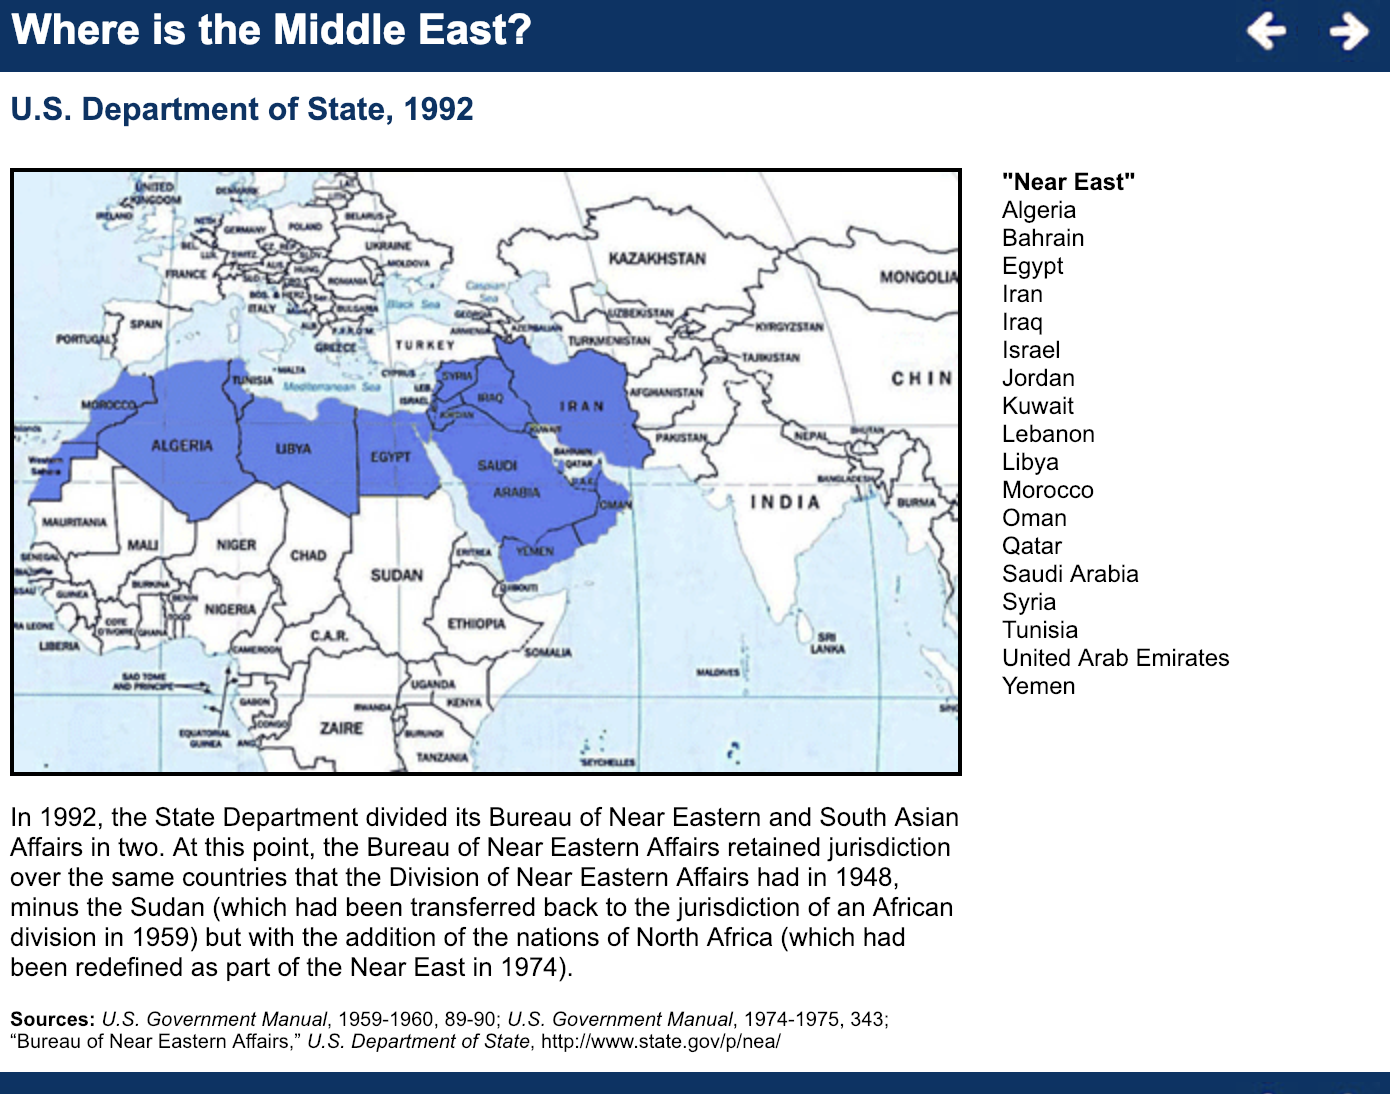 Where Is the Middle East? | Center for Middle East and Islamic Studies